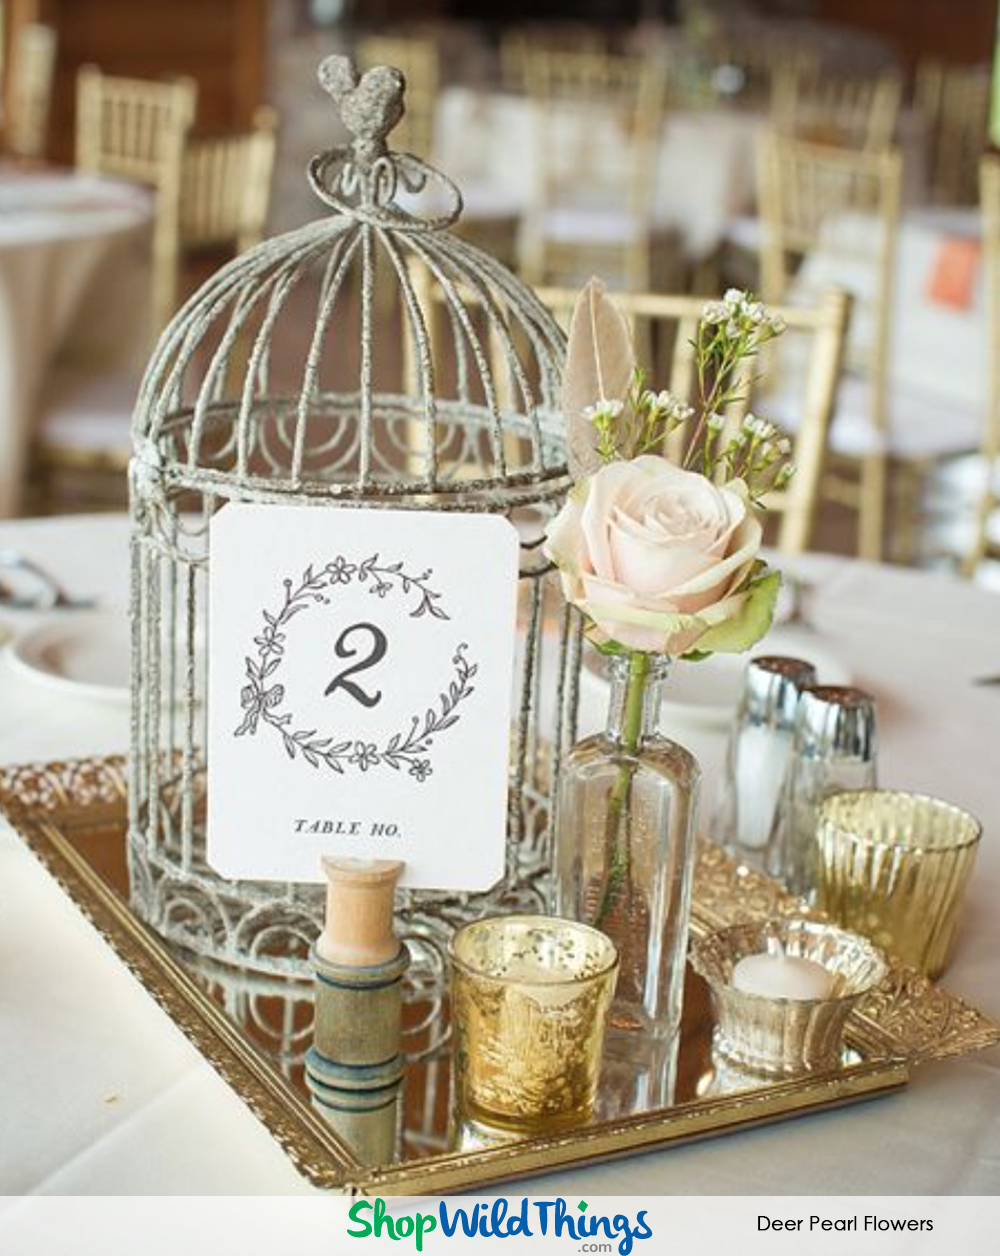 BLOG! Wedding Table Decorations : Top 3 Secrets for Great Tables